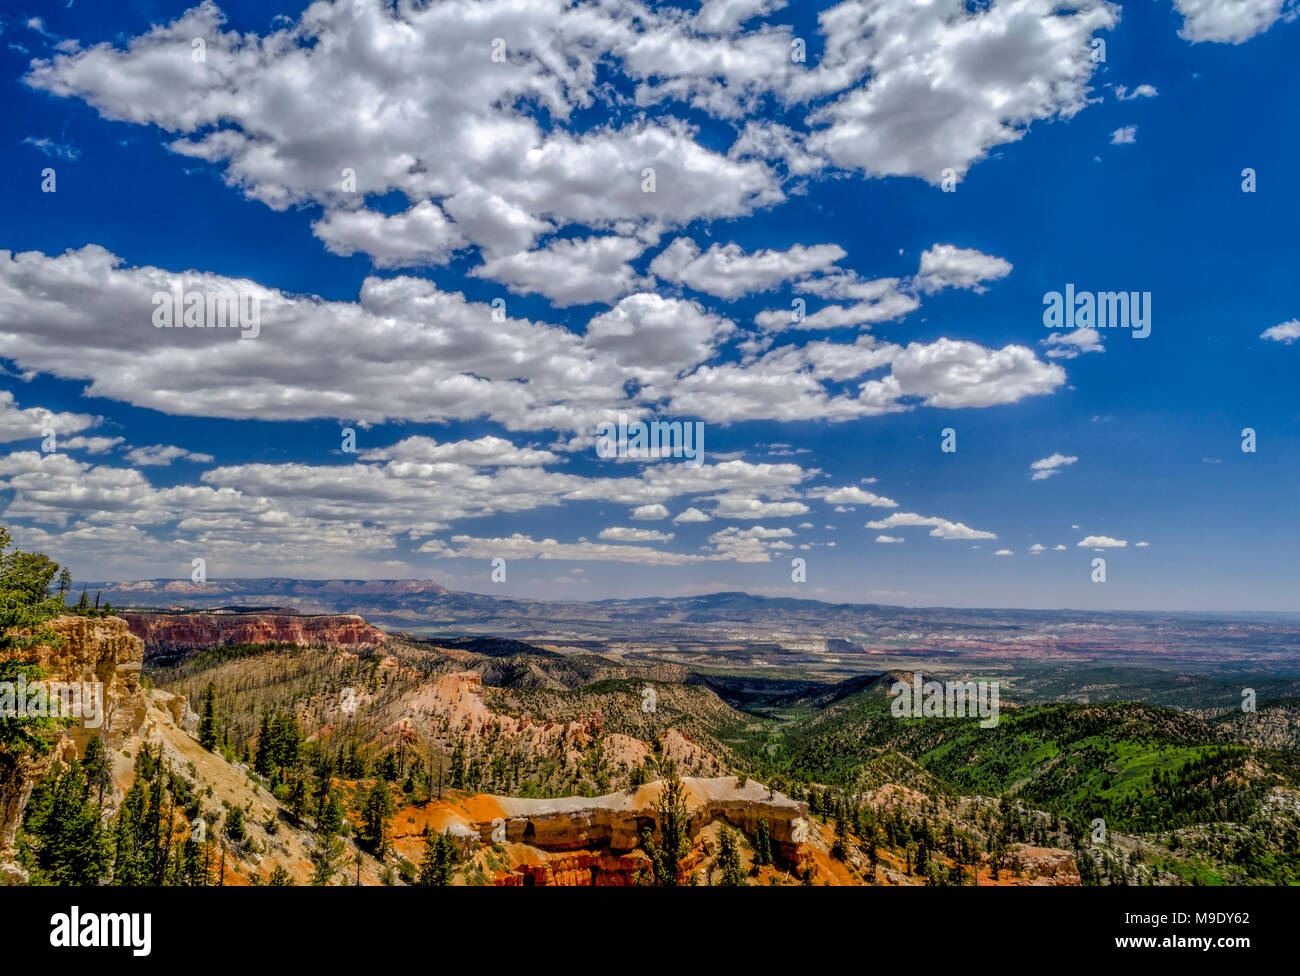 Overlooking a valley with orange and red hillsides and cliffs with green valley below under a bright blue sky with white fluffy clouds. - Stock Image